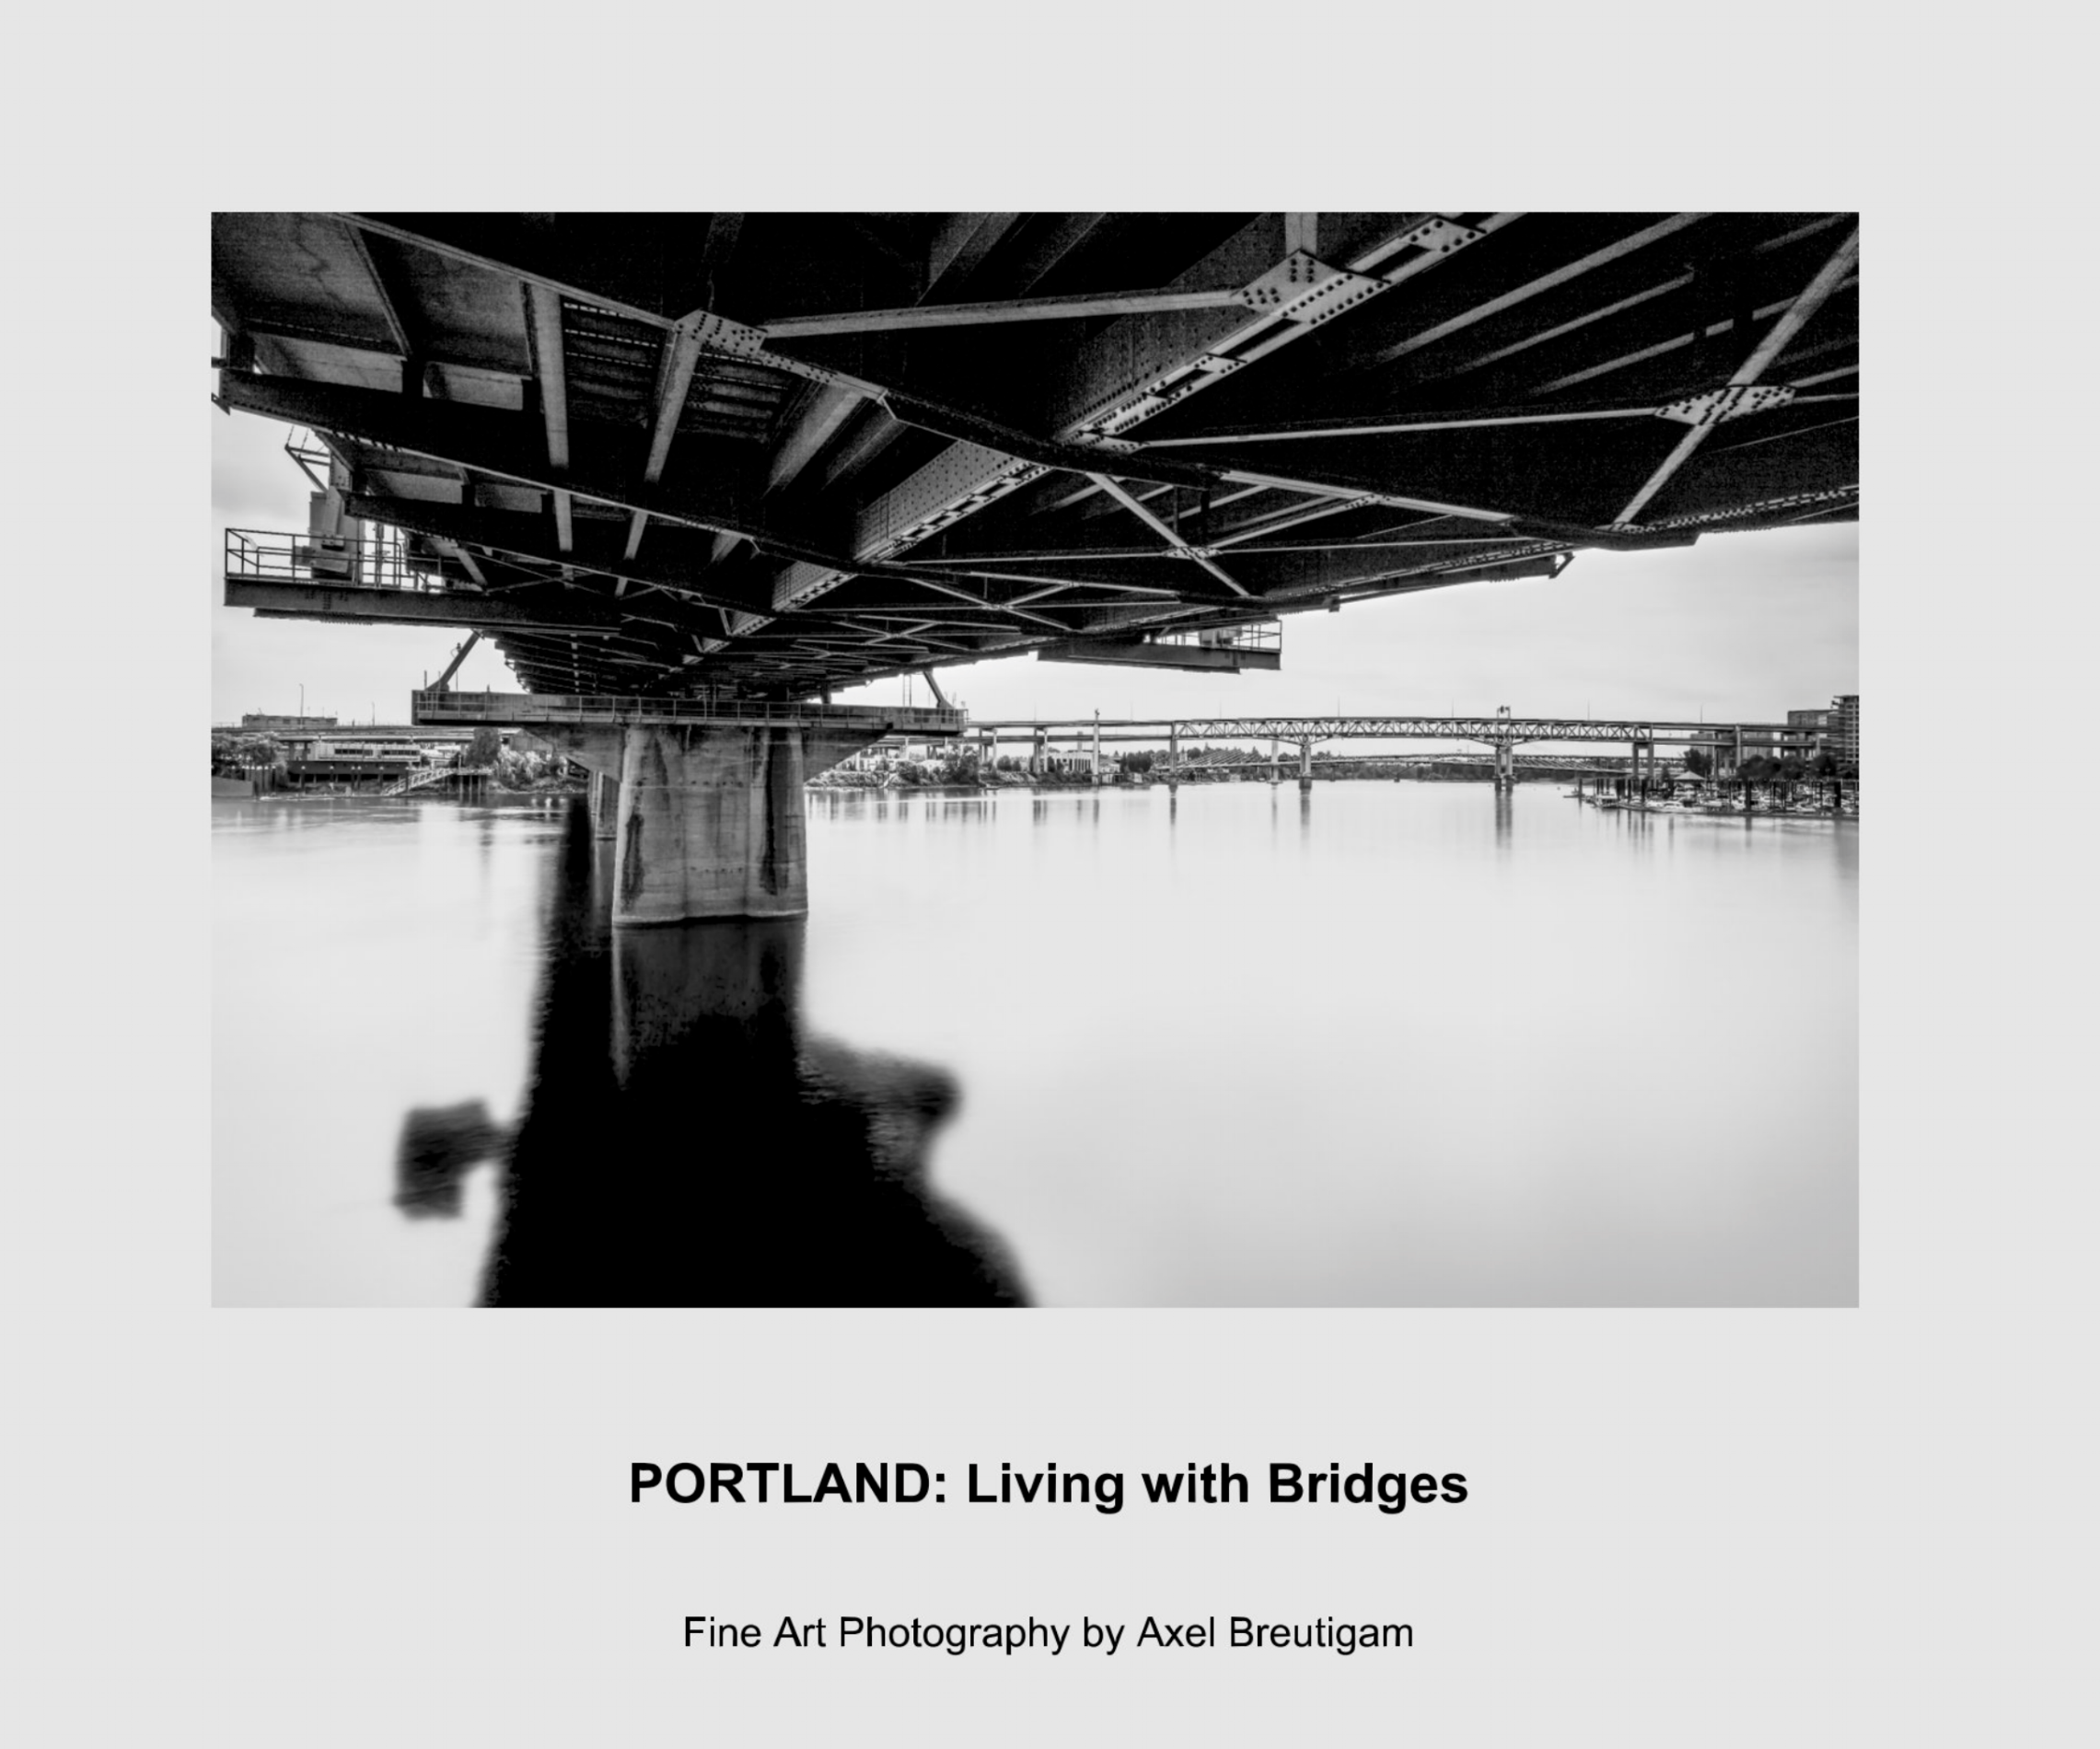 PORTLAND: LIVING WITH BRIDGES — AXEL BREUTIGAM